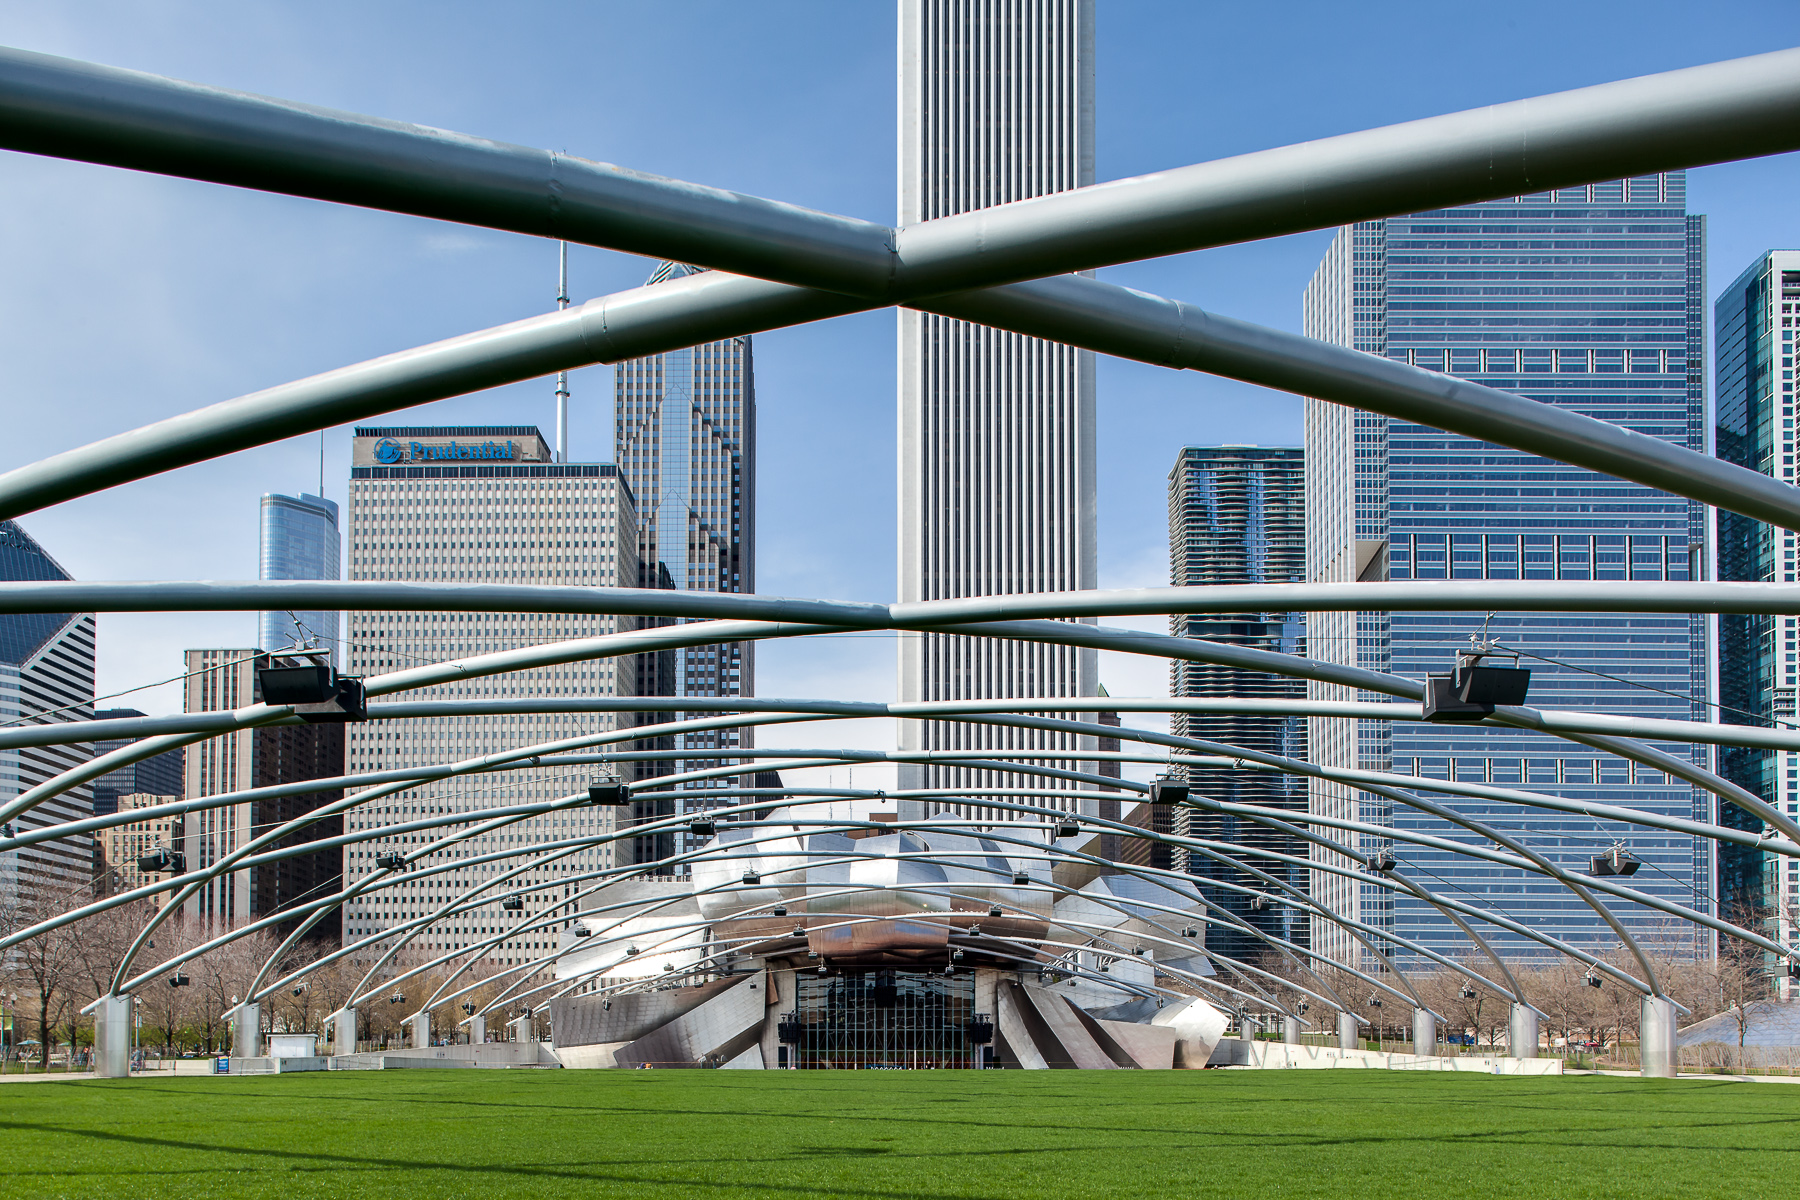 Millenium Park - Chicago Architecture